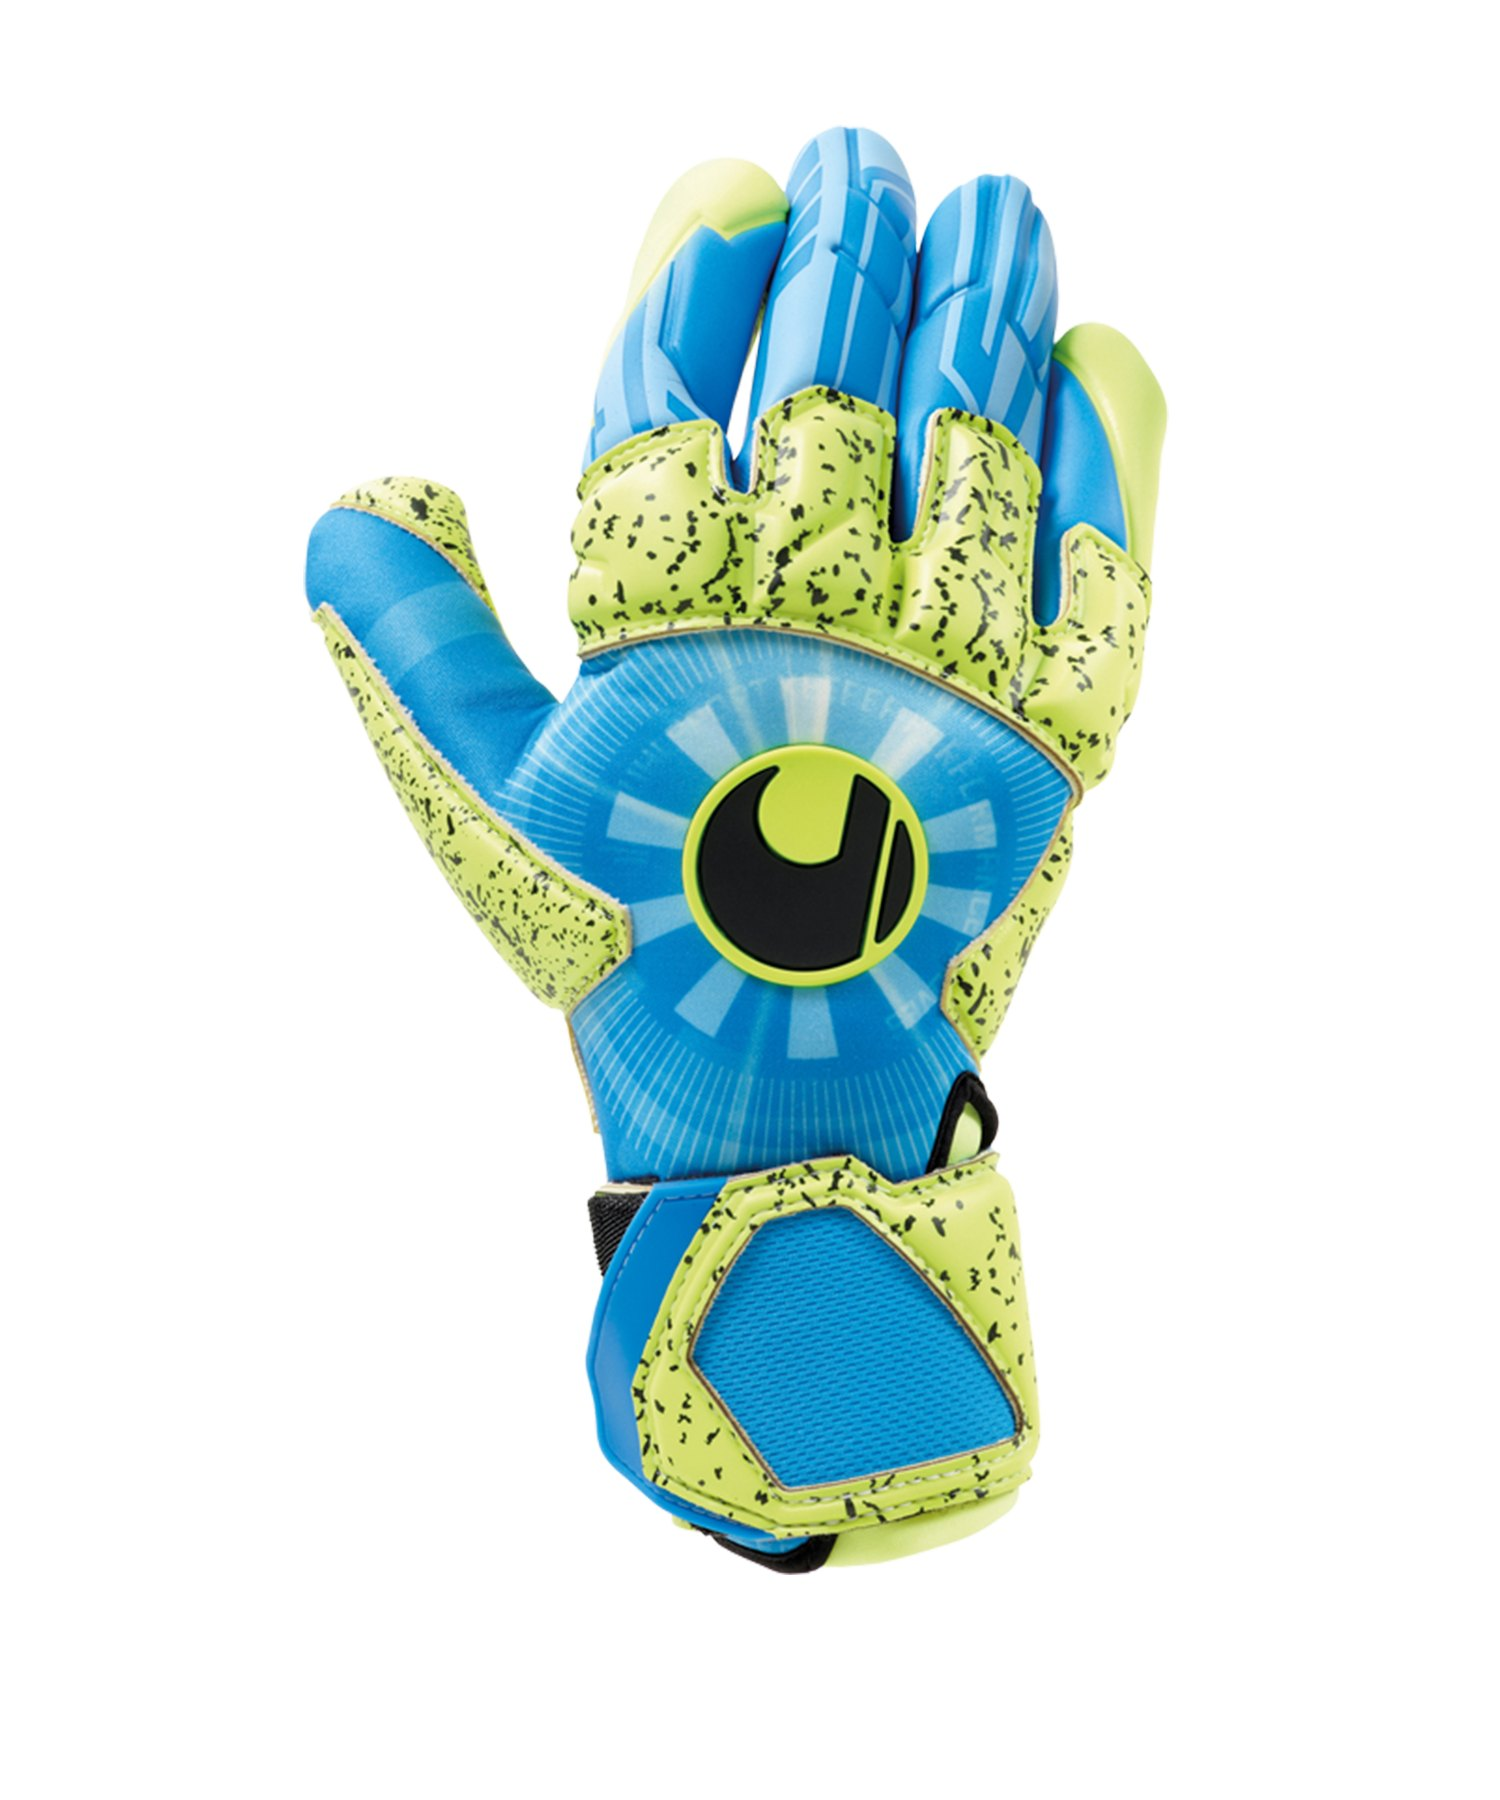 Uhlsport Radar Control Supergrip Reflex F01 - Blau